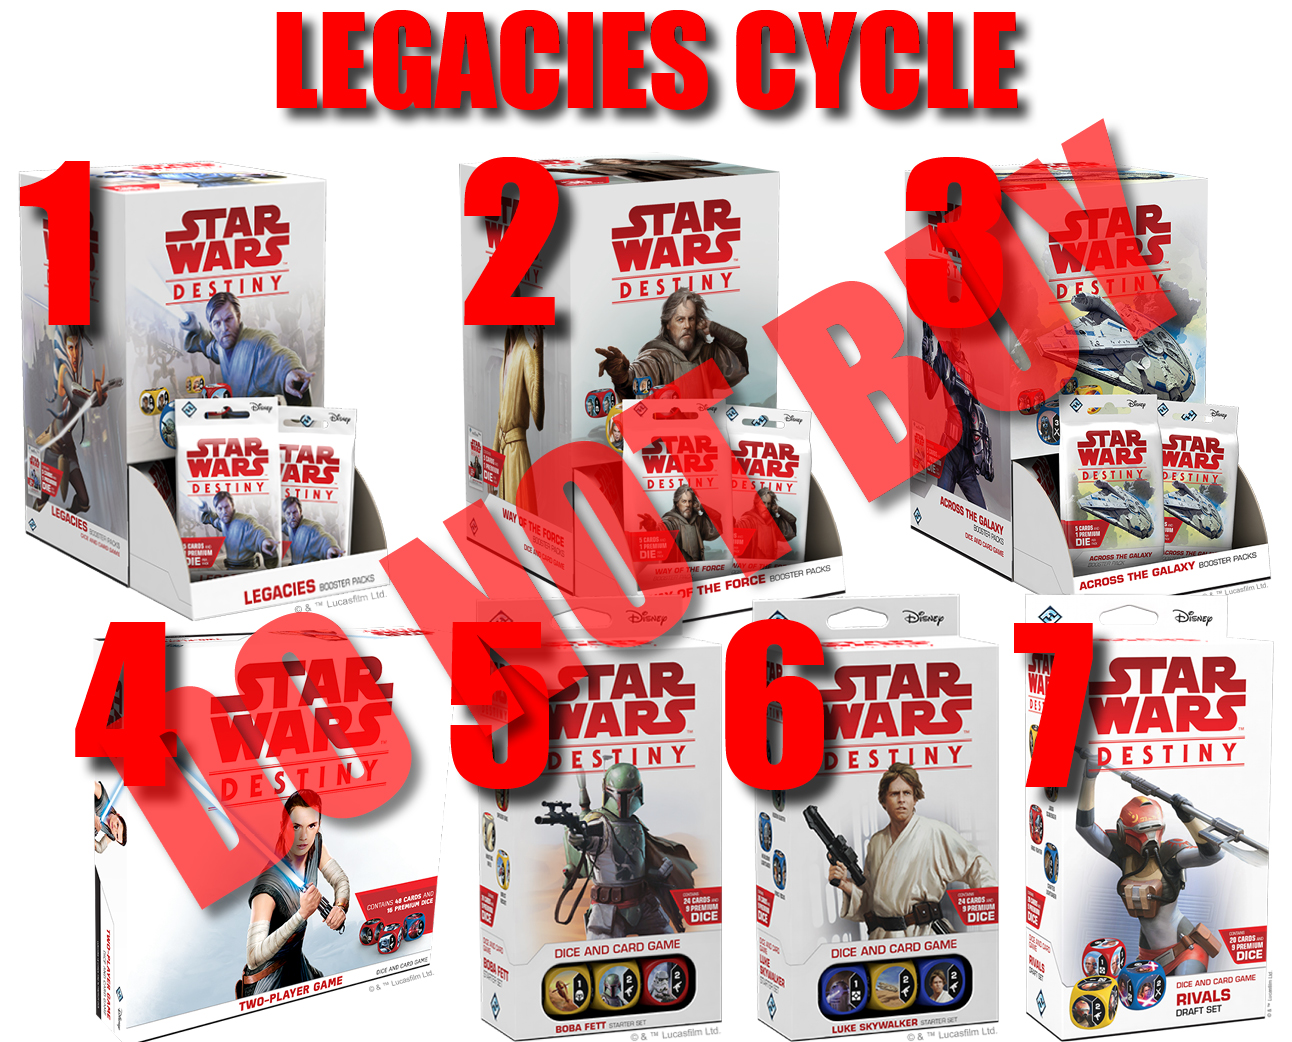 Buyers guide Legacies Cyclejpg